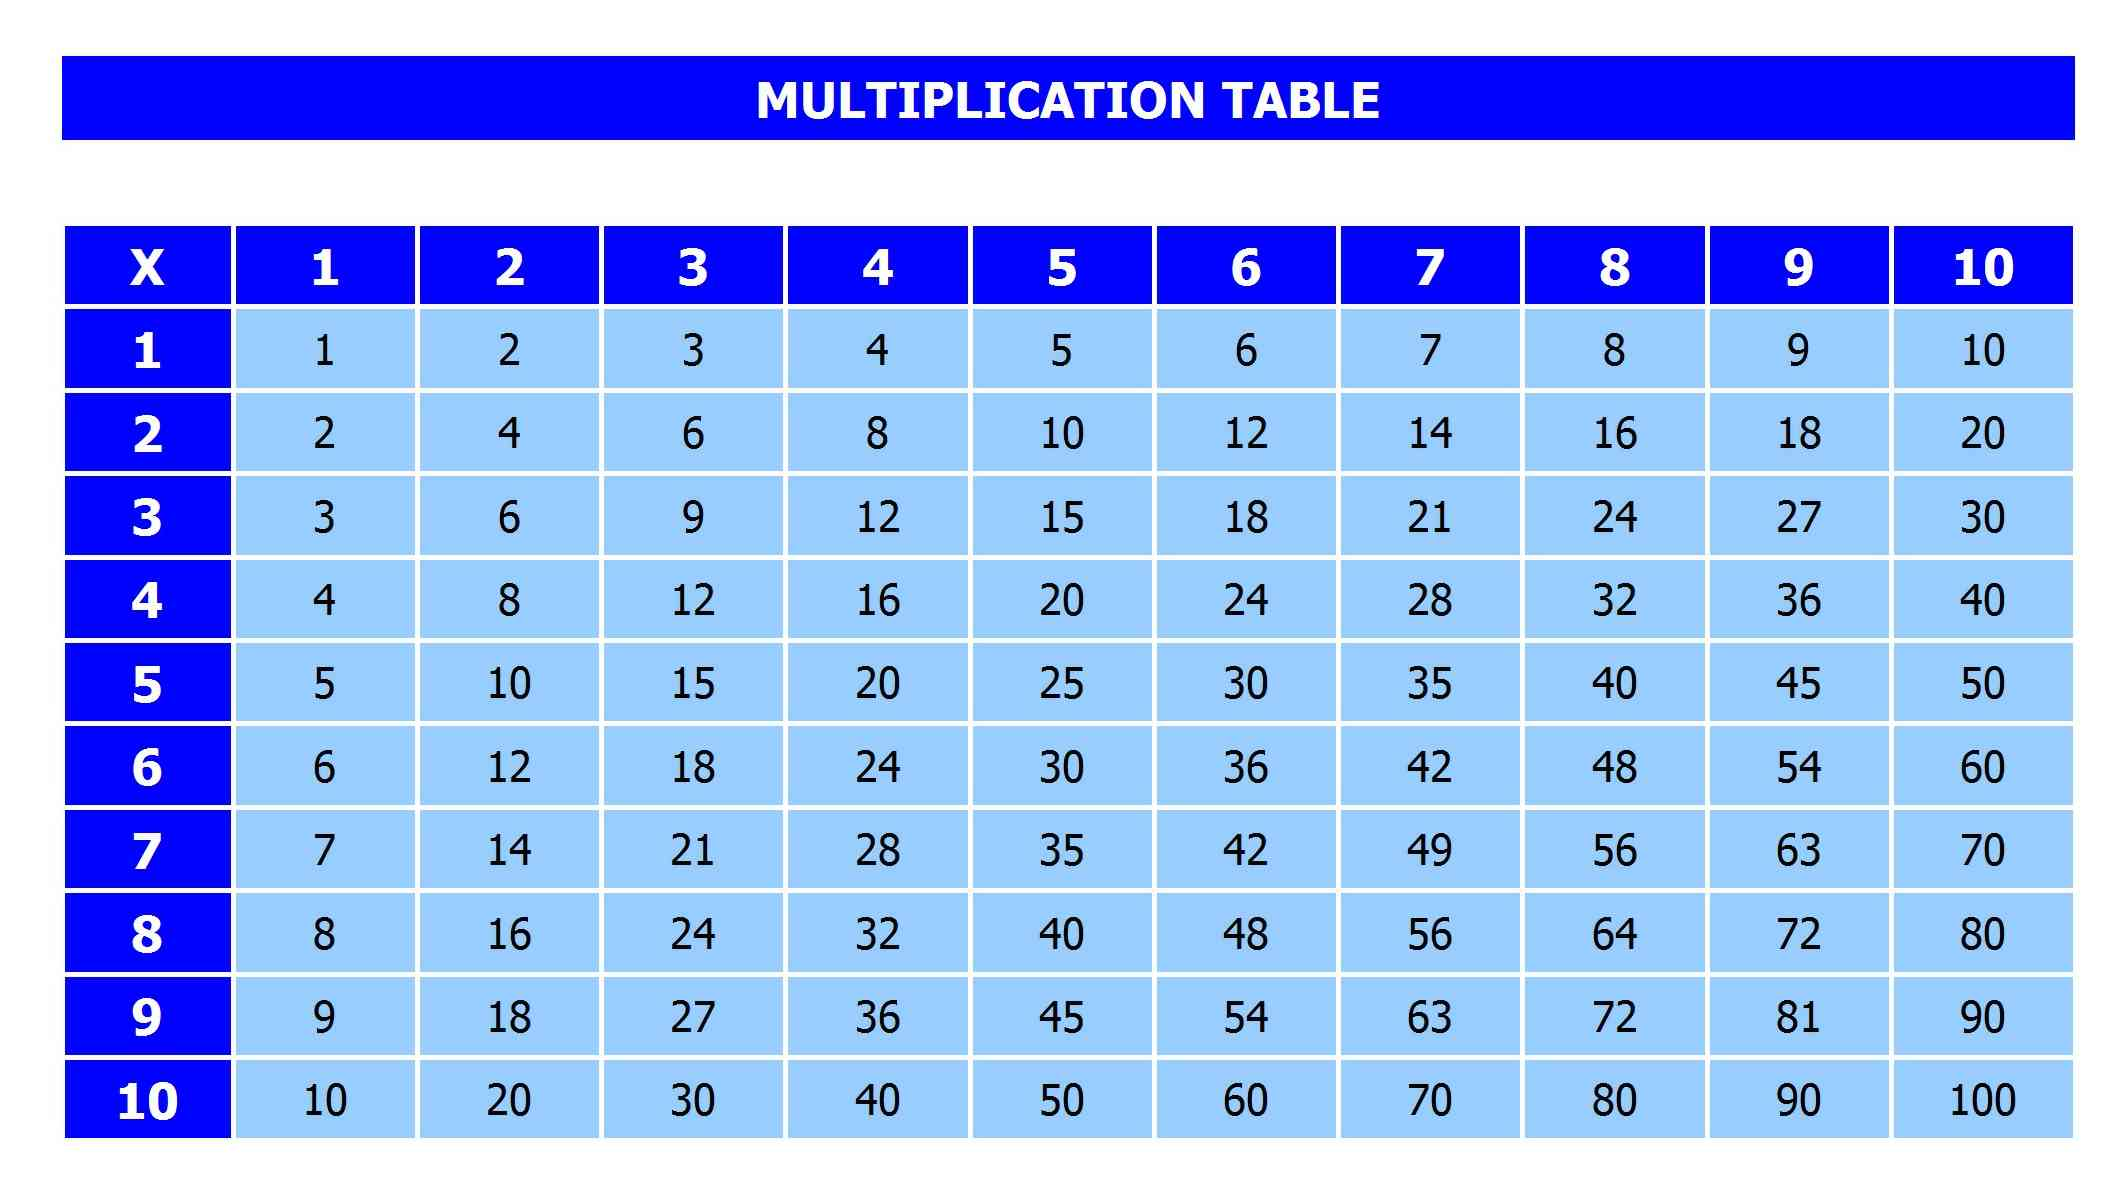 Multiplication Table Blank Template | New Calendar Template Site